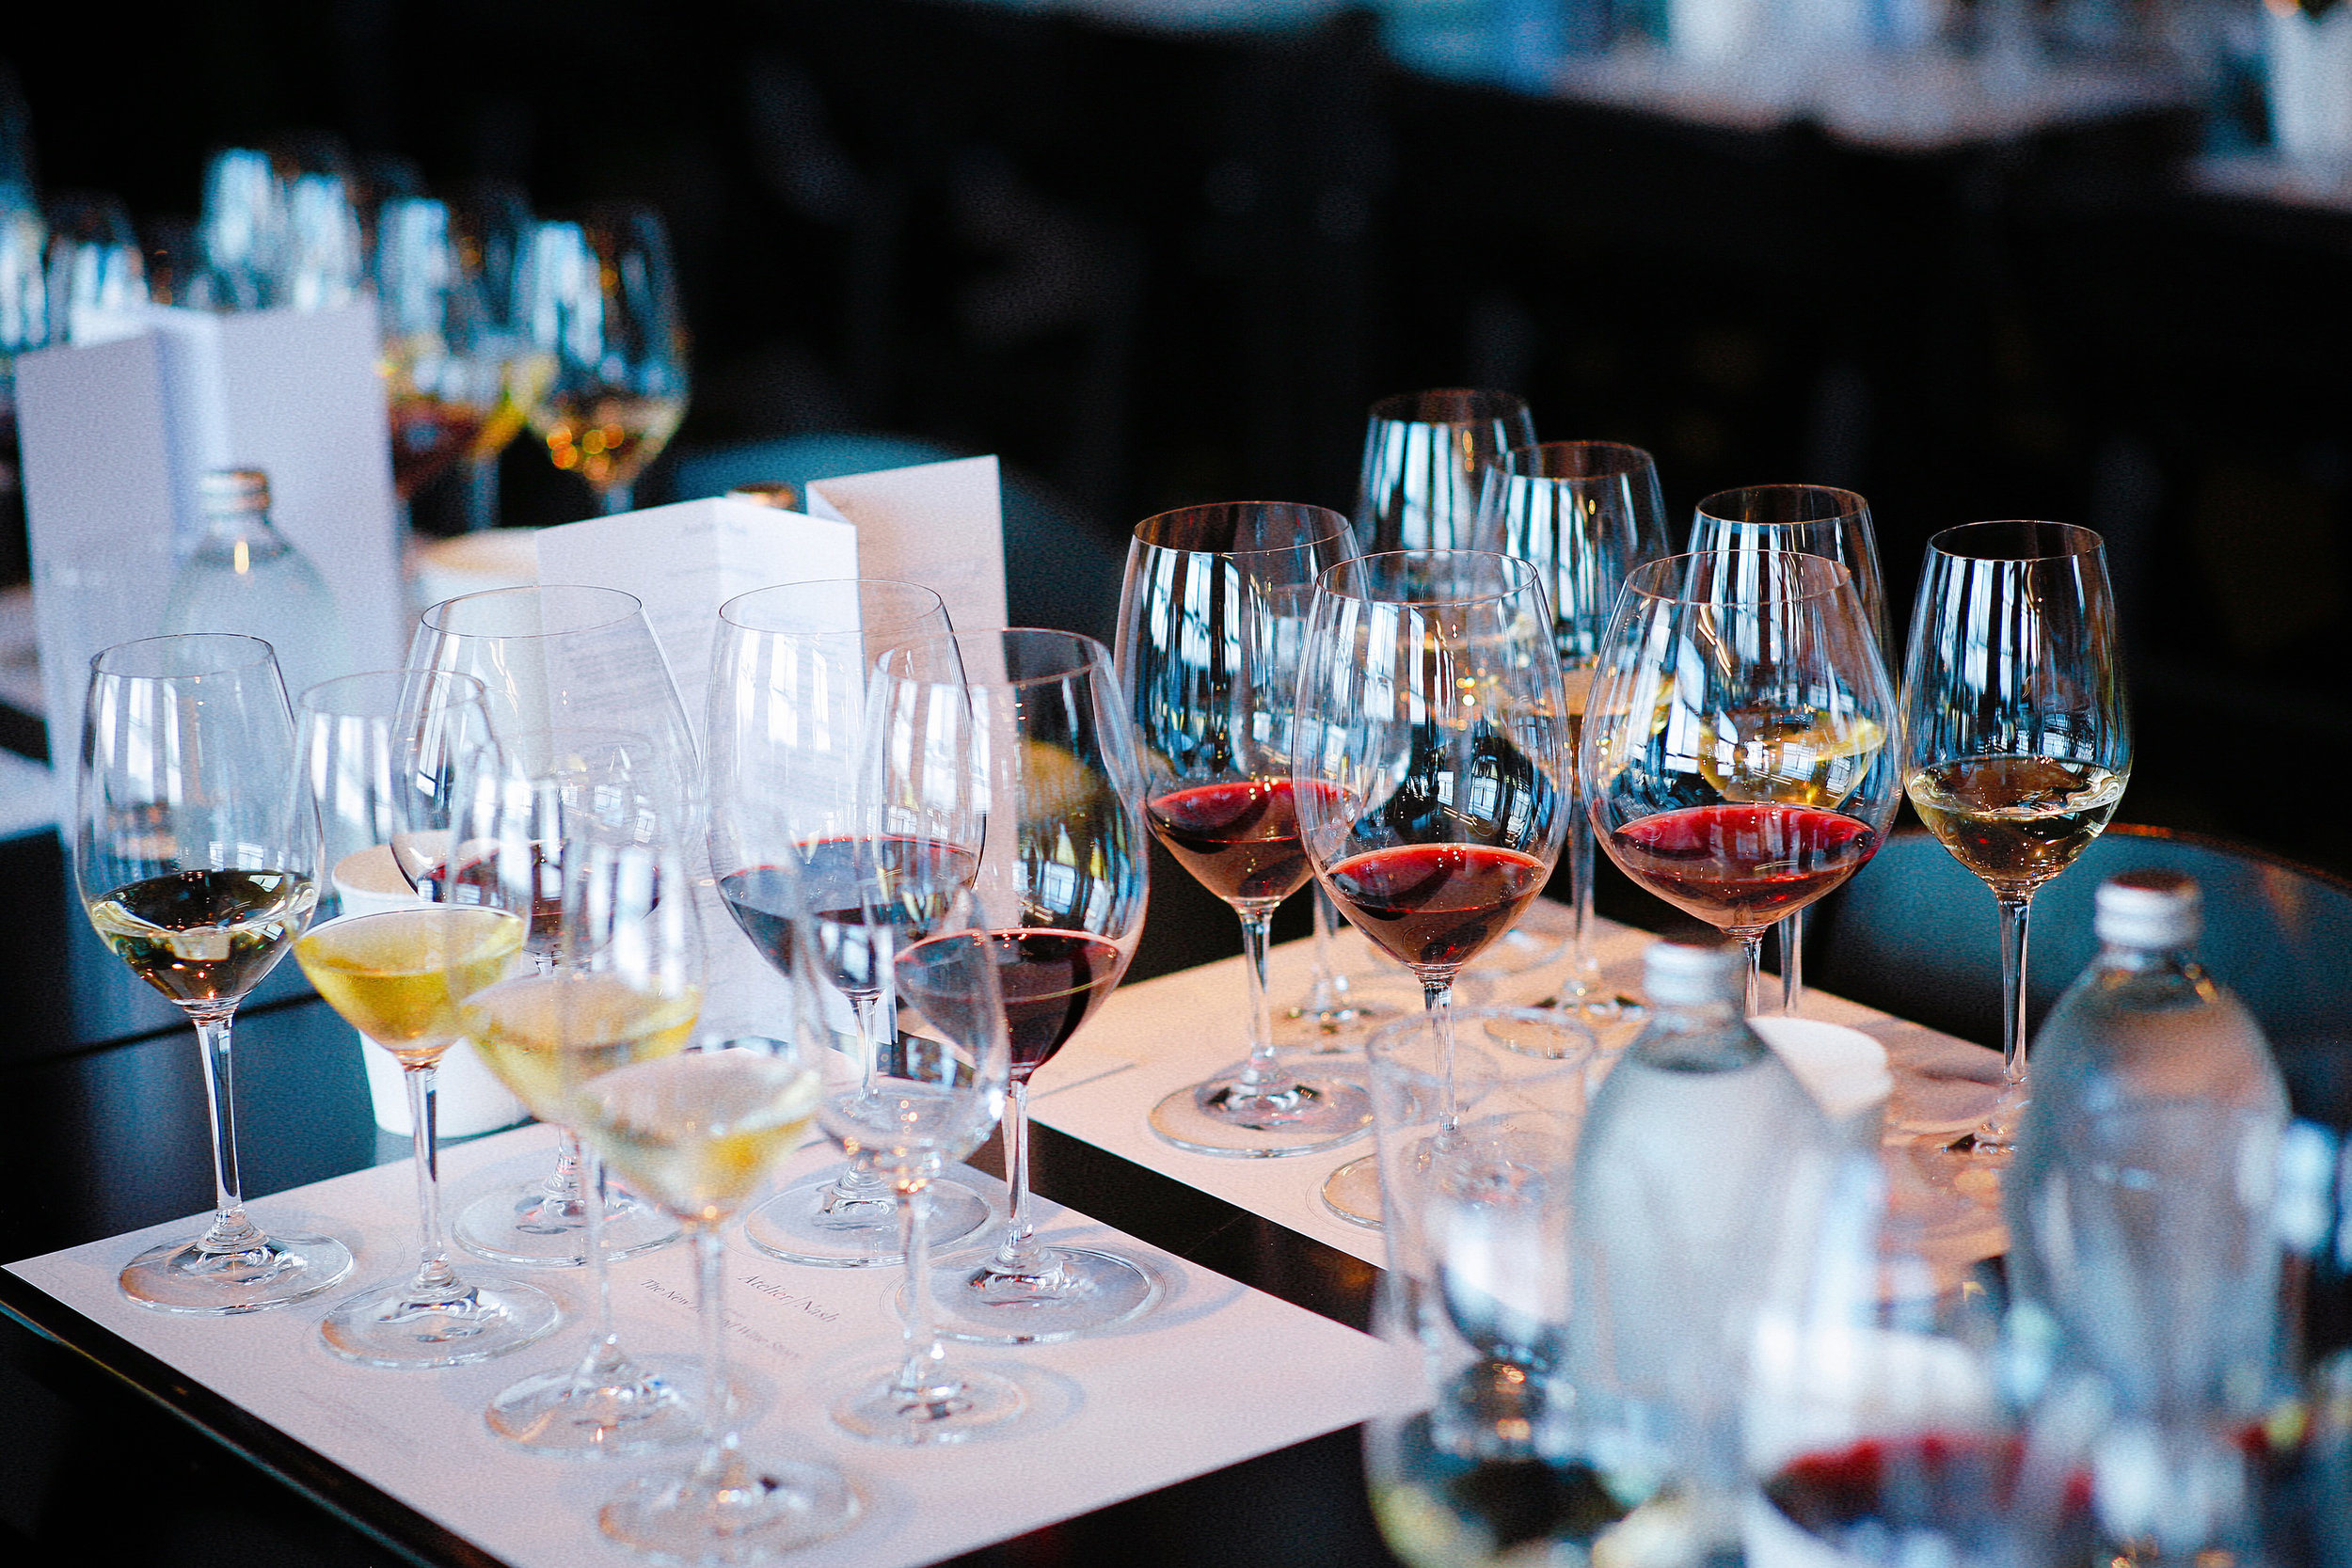 The New Zealand Wine Story - An entertaining storytelling session. You'll taste 8 wines from all major wine growing areas of New Zealand while learning the stories that have made them legendary.